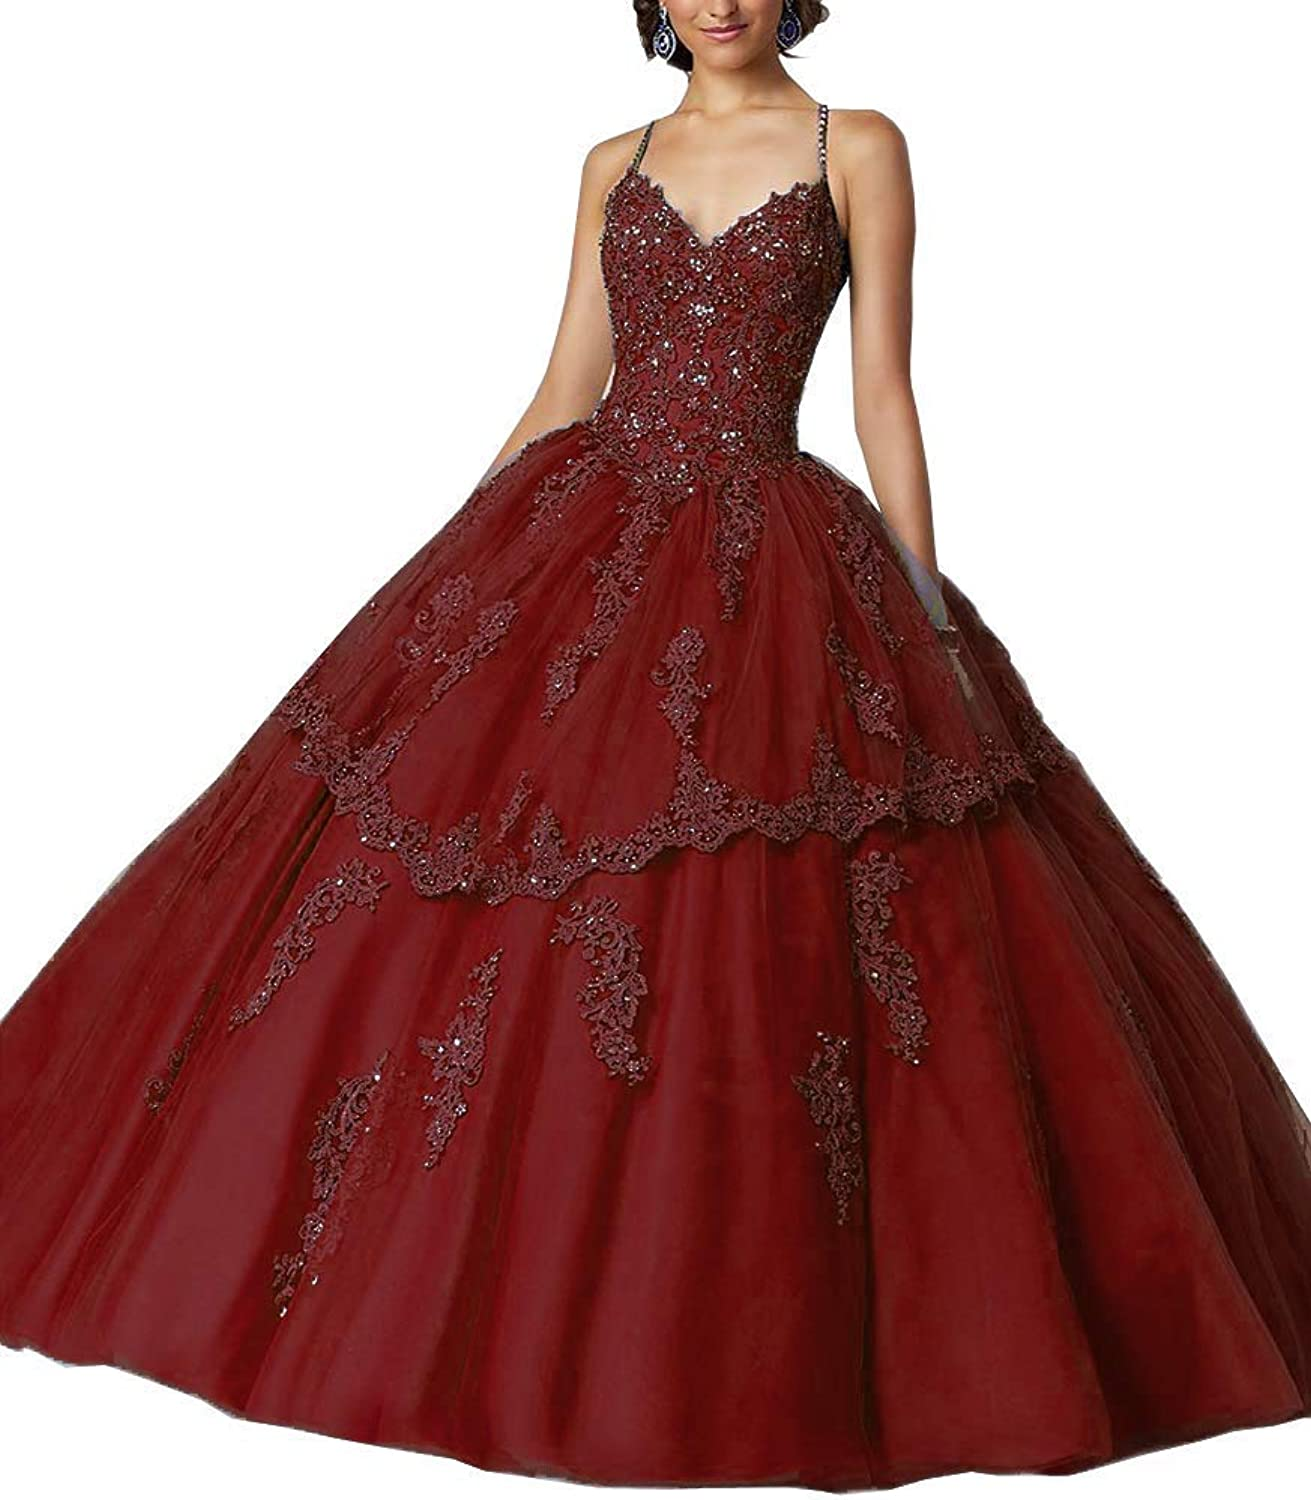 Jingliz Spaghetti Strap Quinceanera Dresses Formal Party Dress Sweet 16 Crystals Beaded Ball Gowns